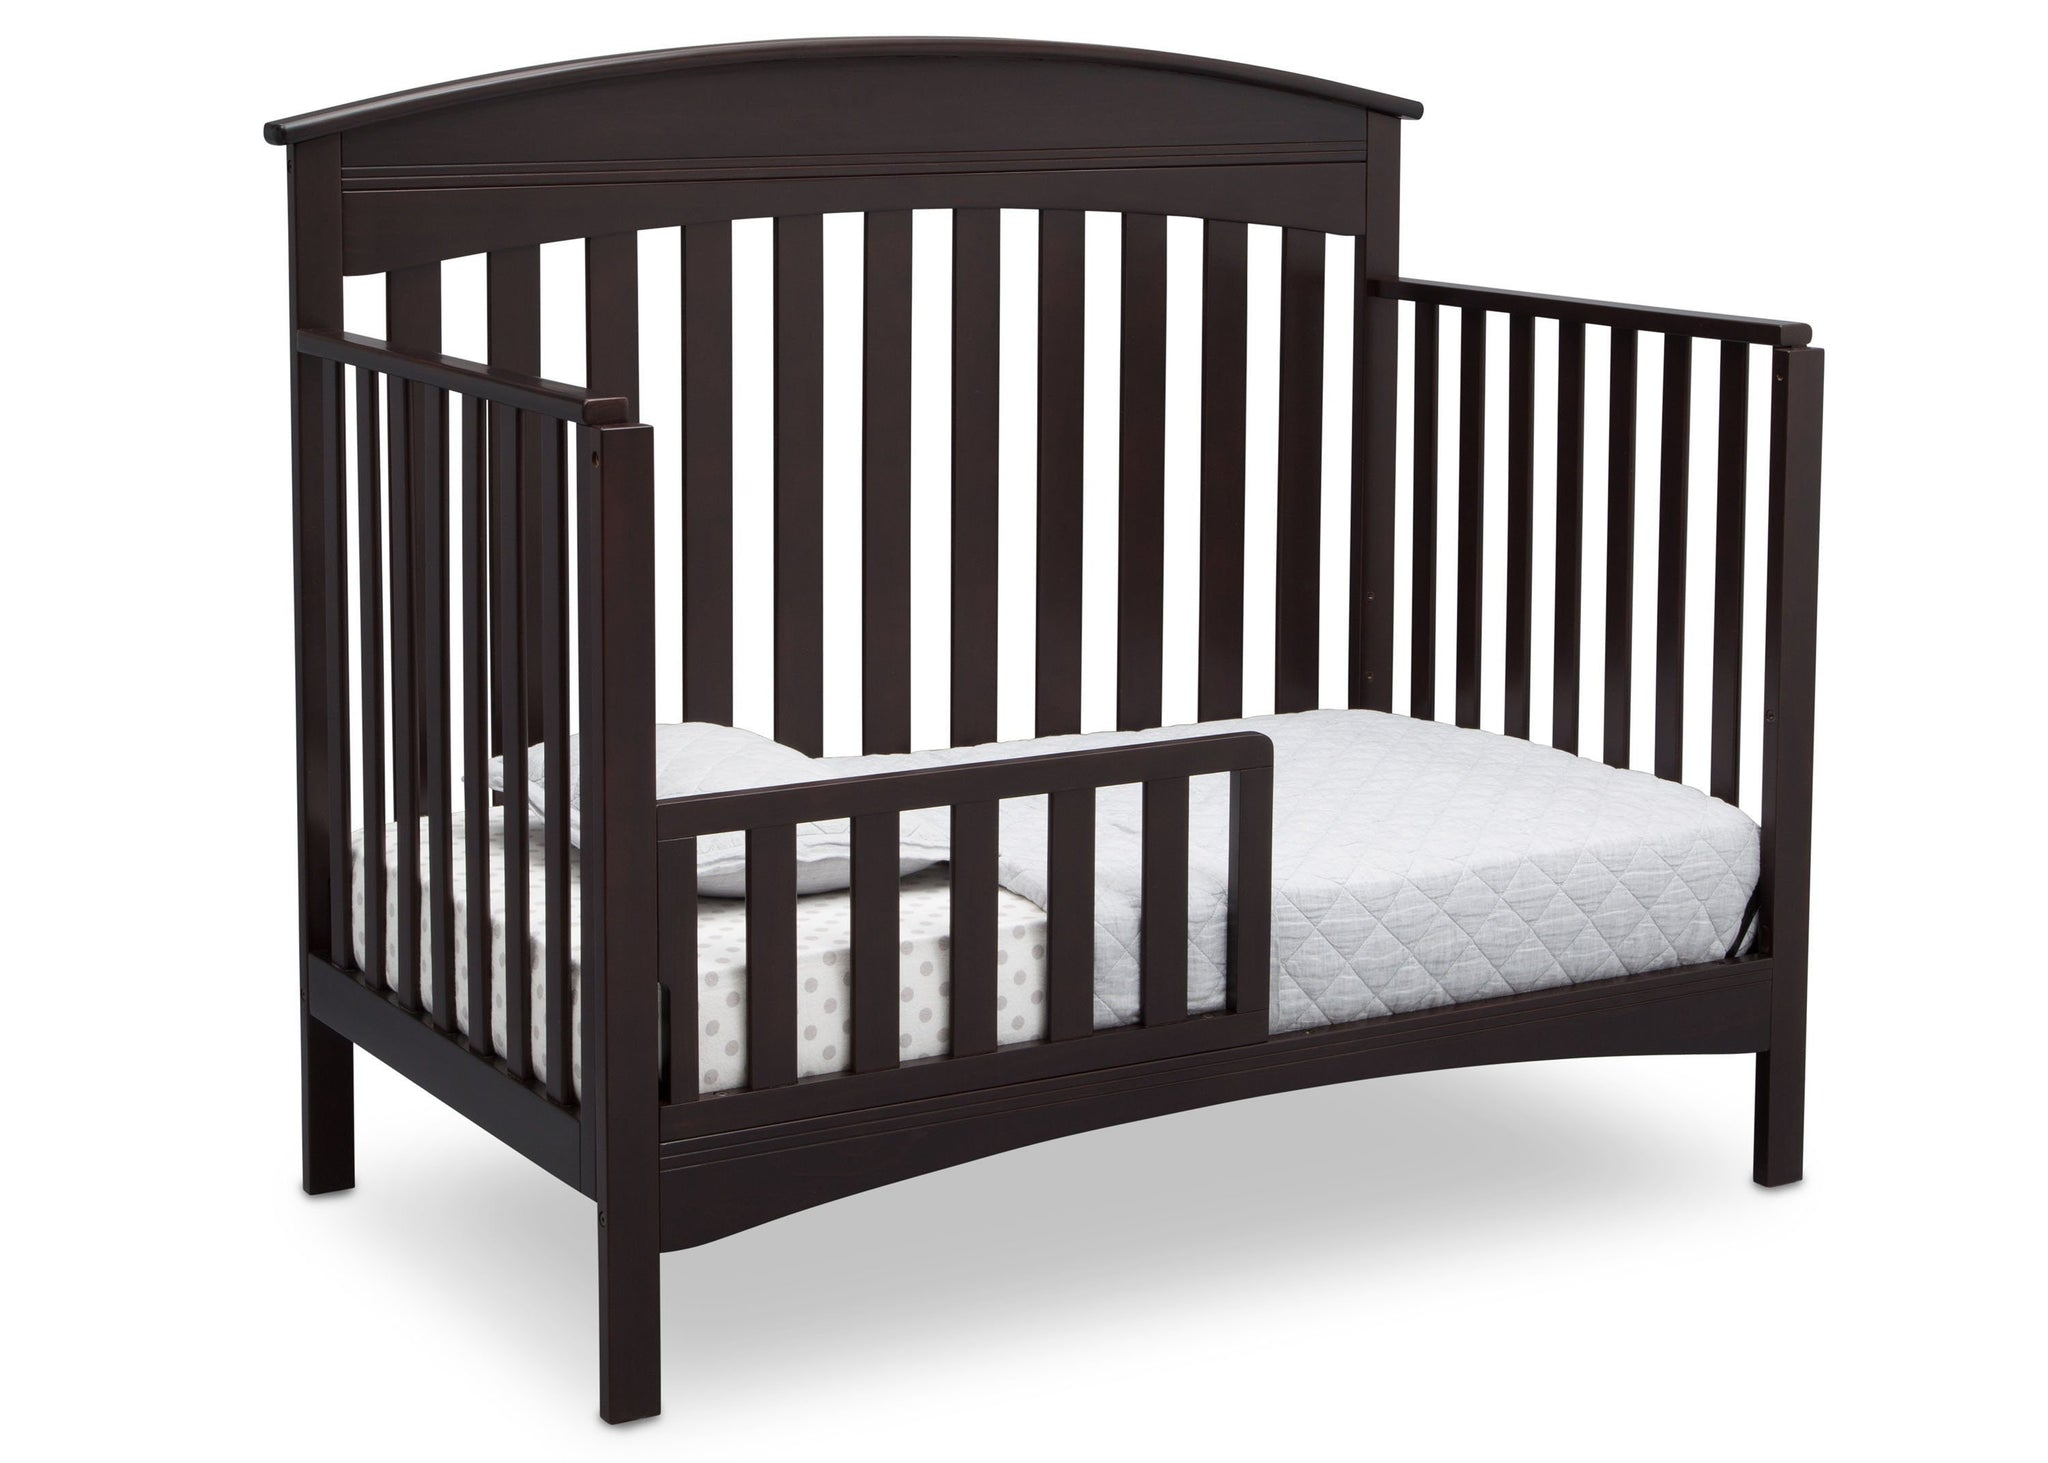 Delta Children Dark Espresso (958) Bennington Elite Arched 4-in-1 Convertible Crib, Toddler Bed Angle, c4c